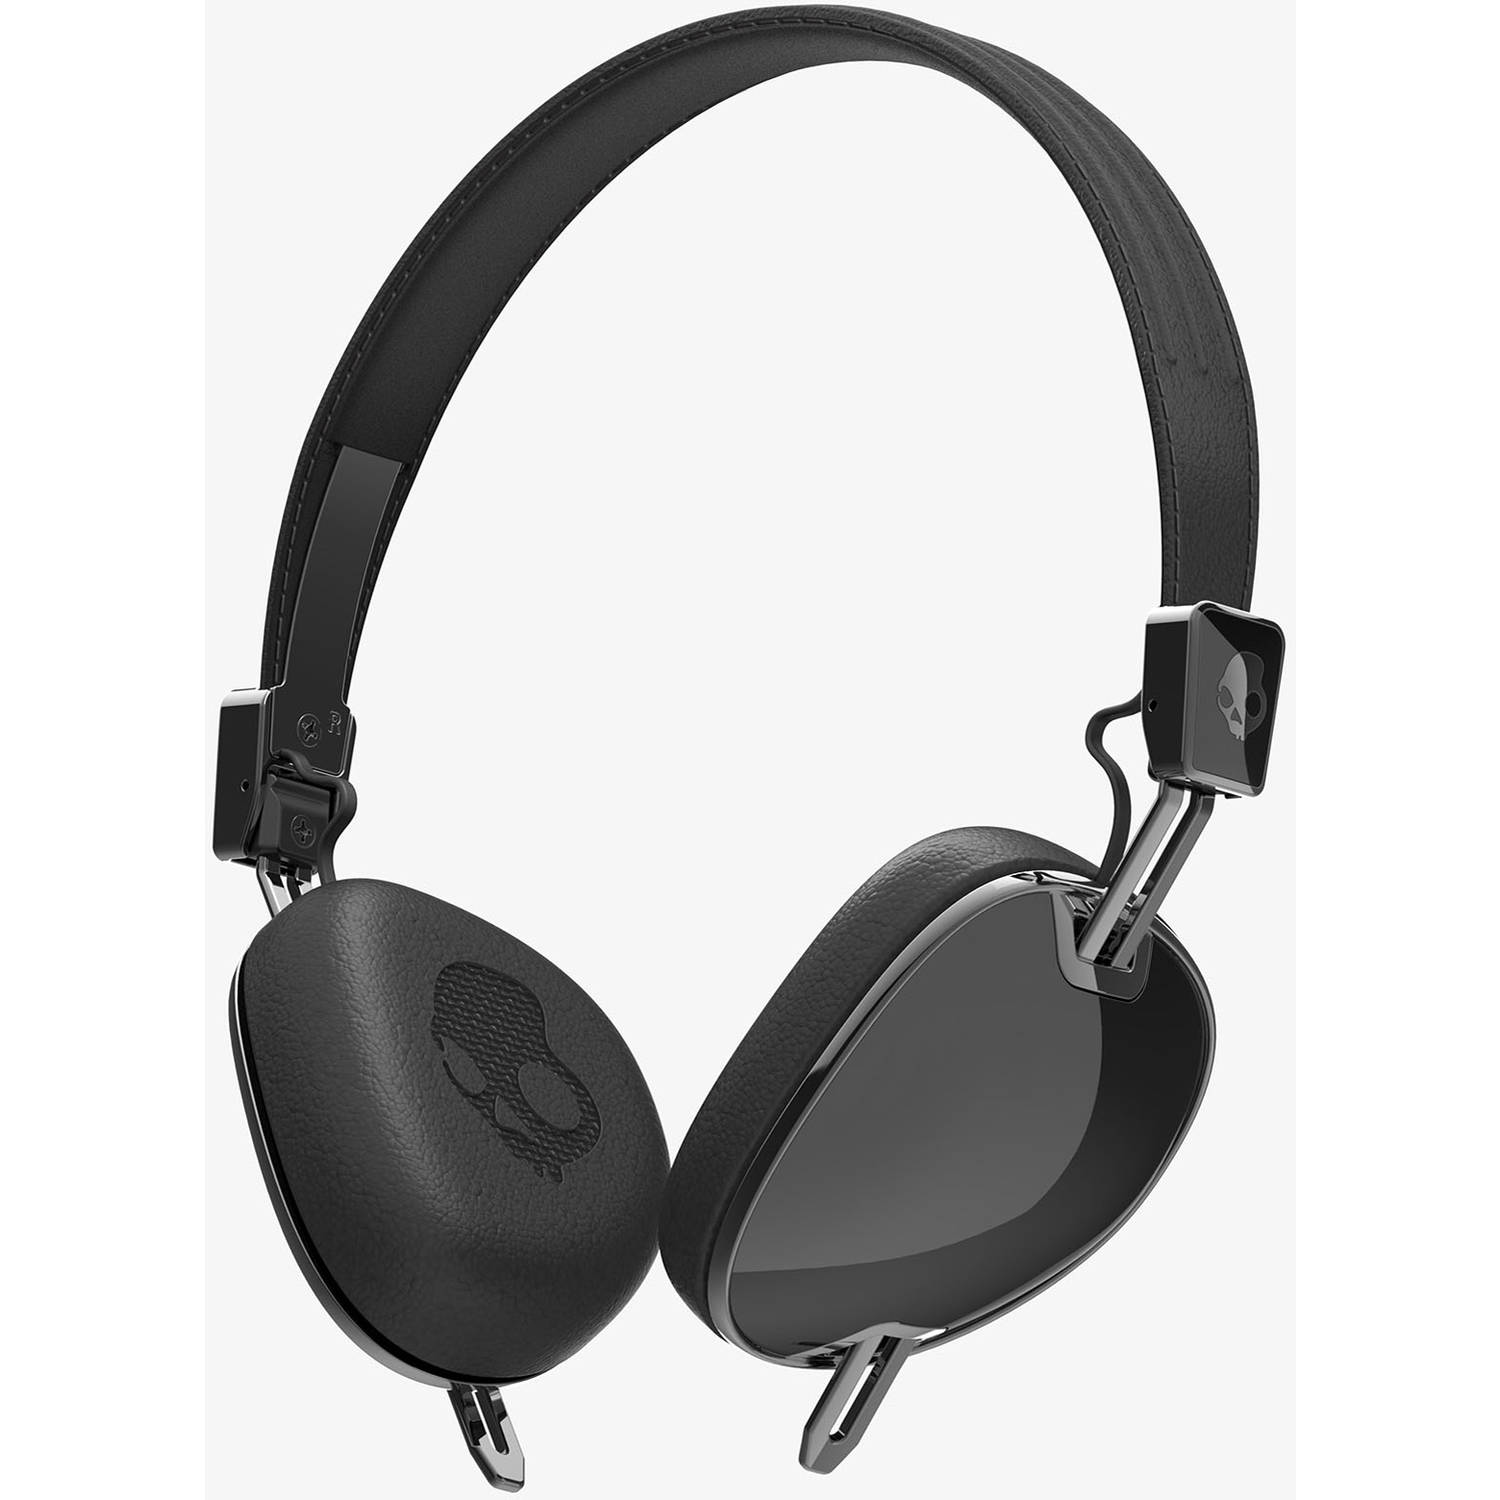 Skullcandy Navigator On Ear Headphones With 3-Button Microphone (Black)